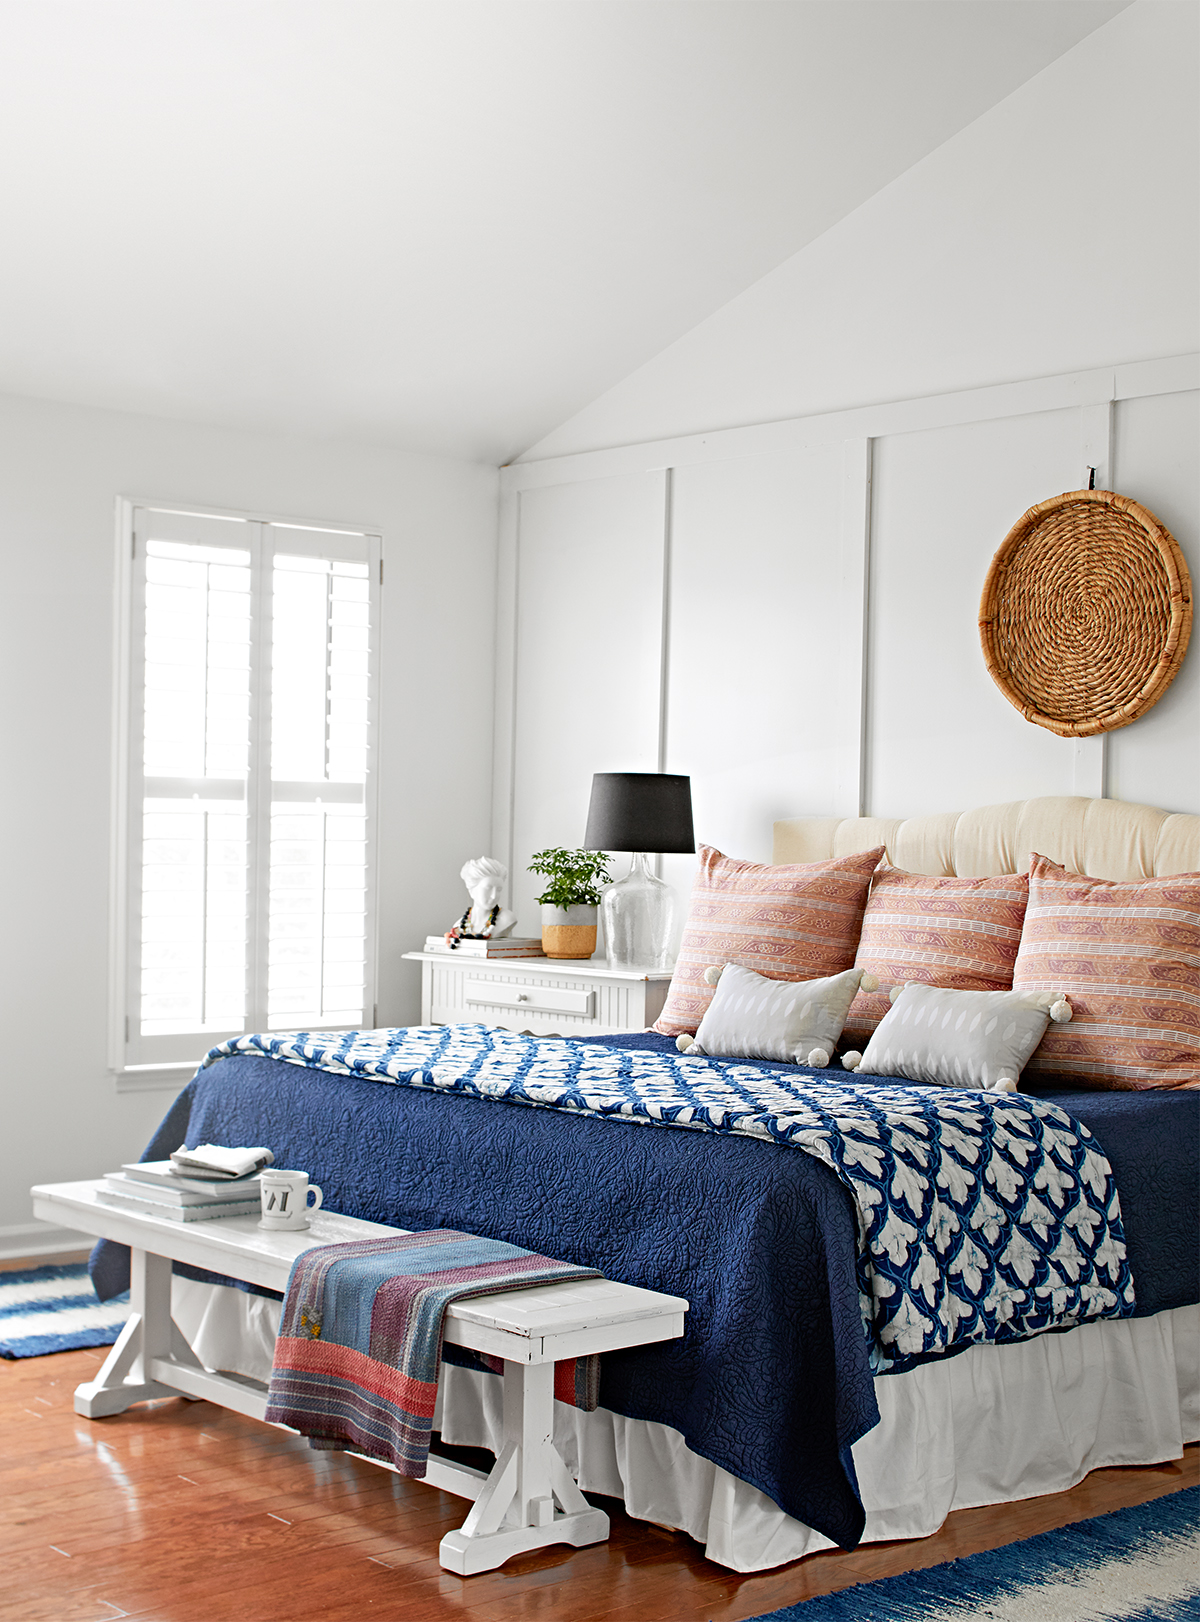 navy and white bedroom with board-and-batten wall trim